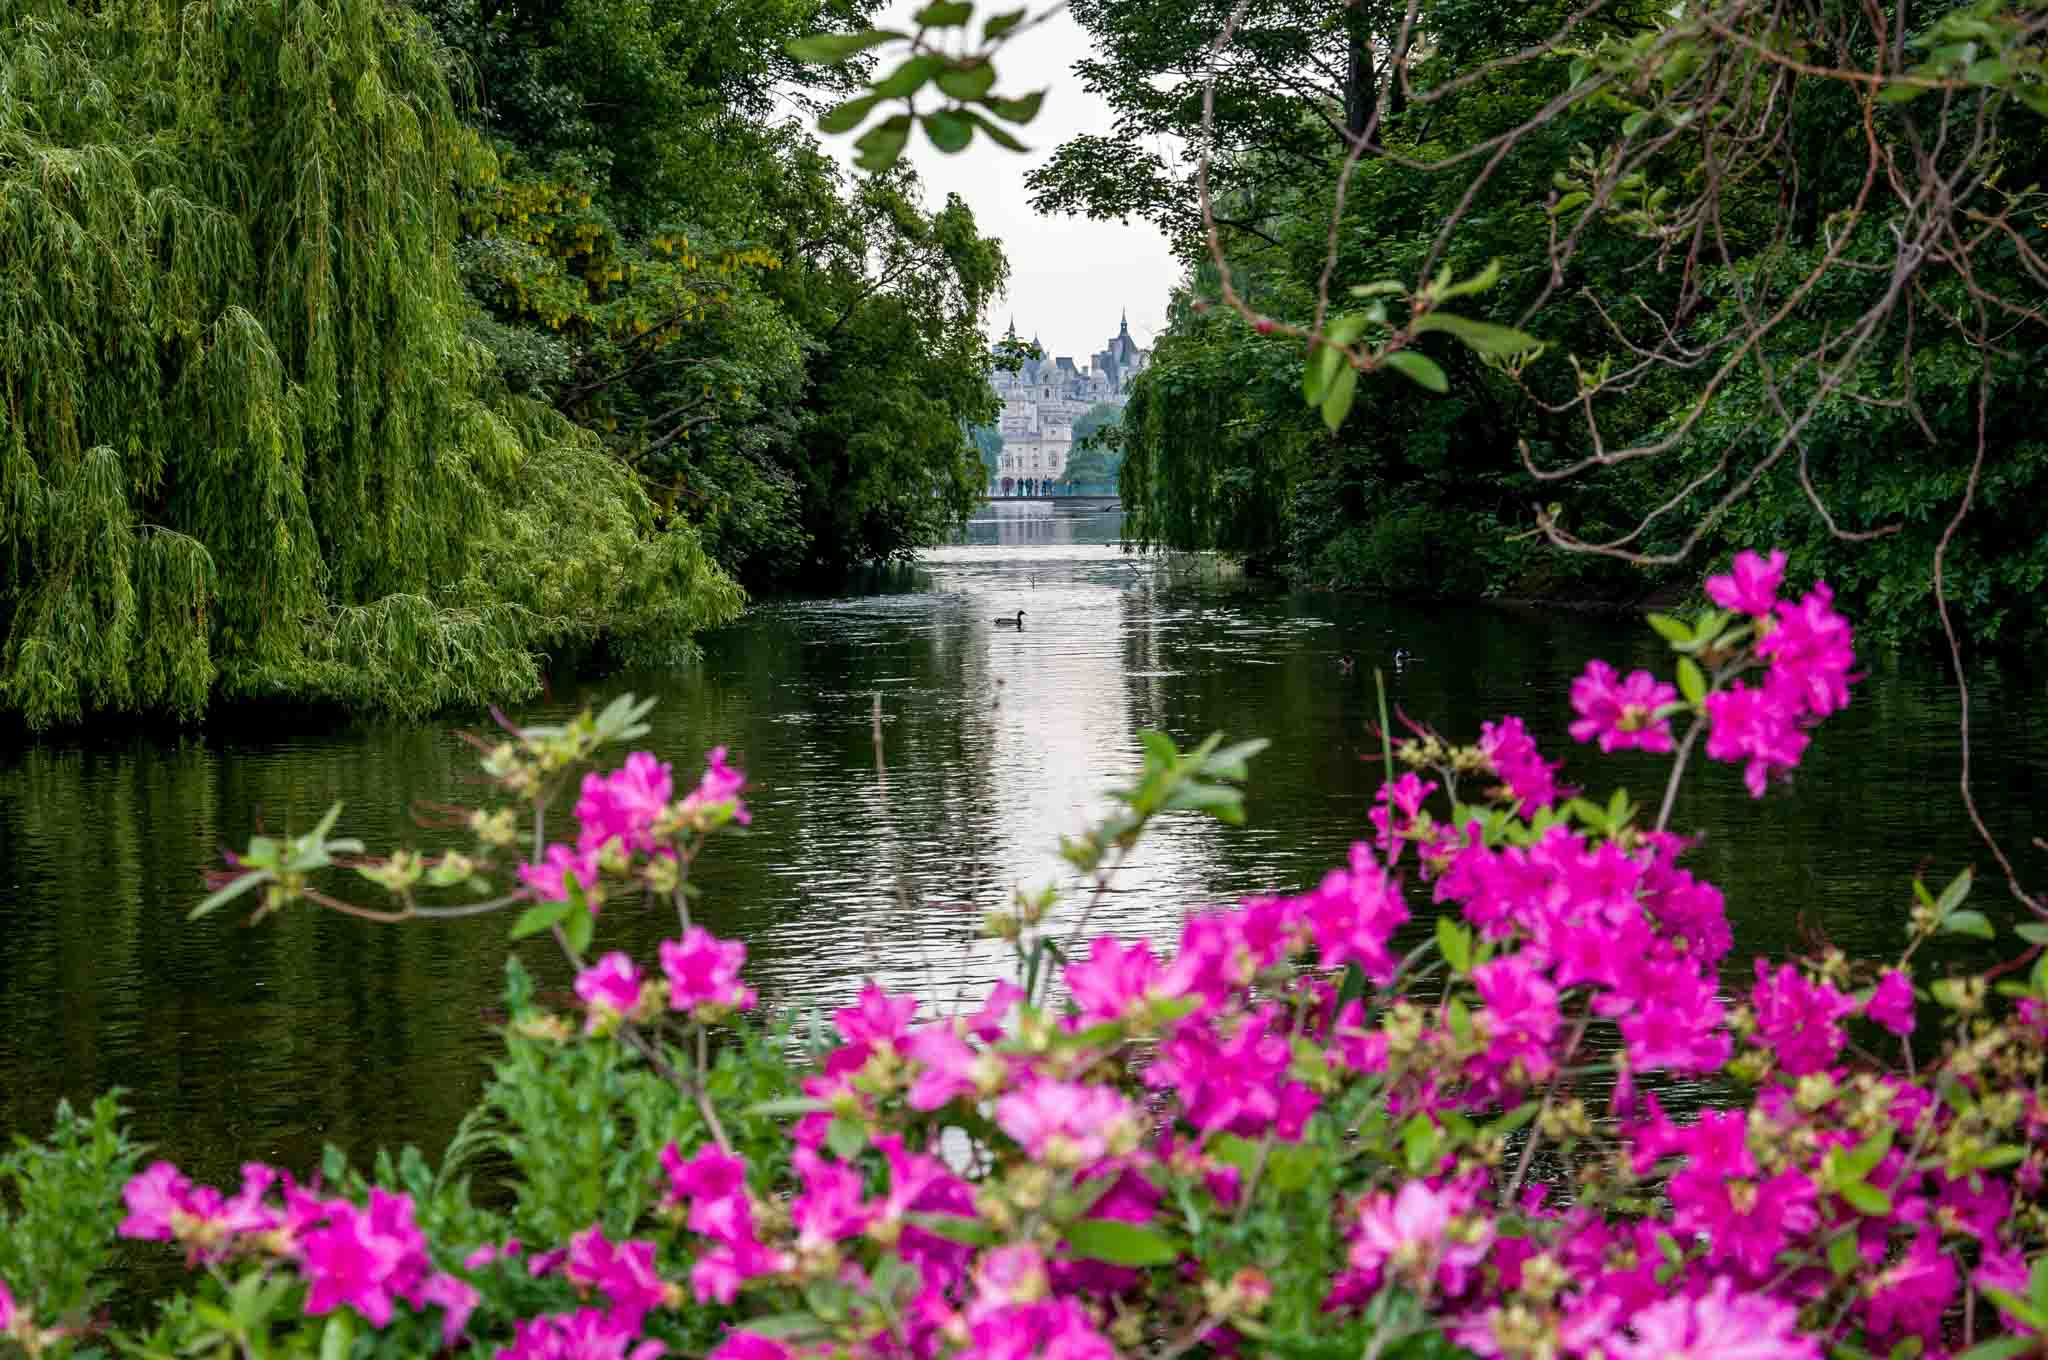 Pond and flowers in a park